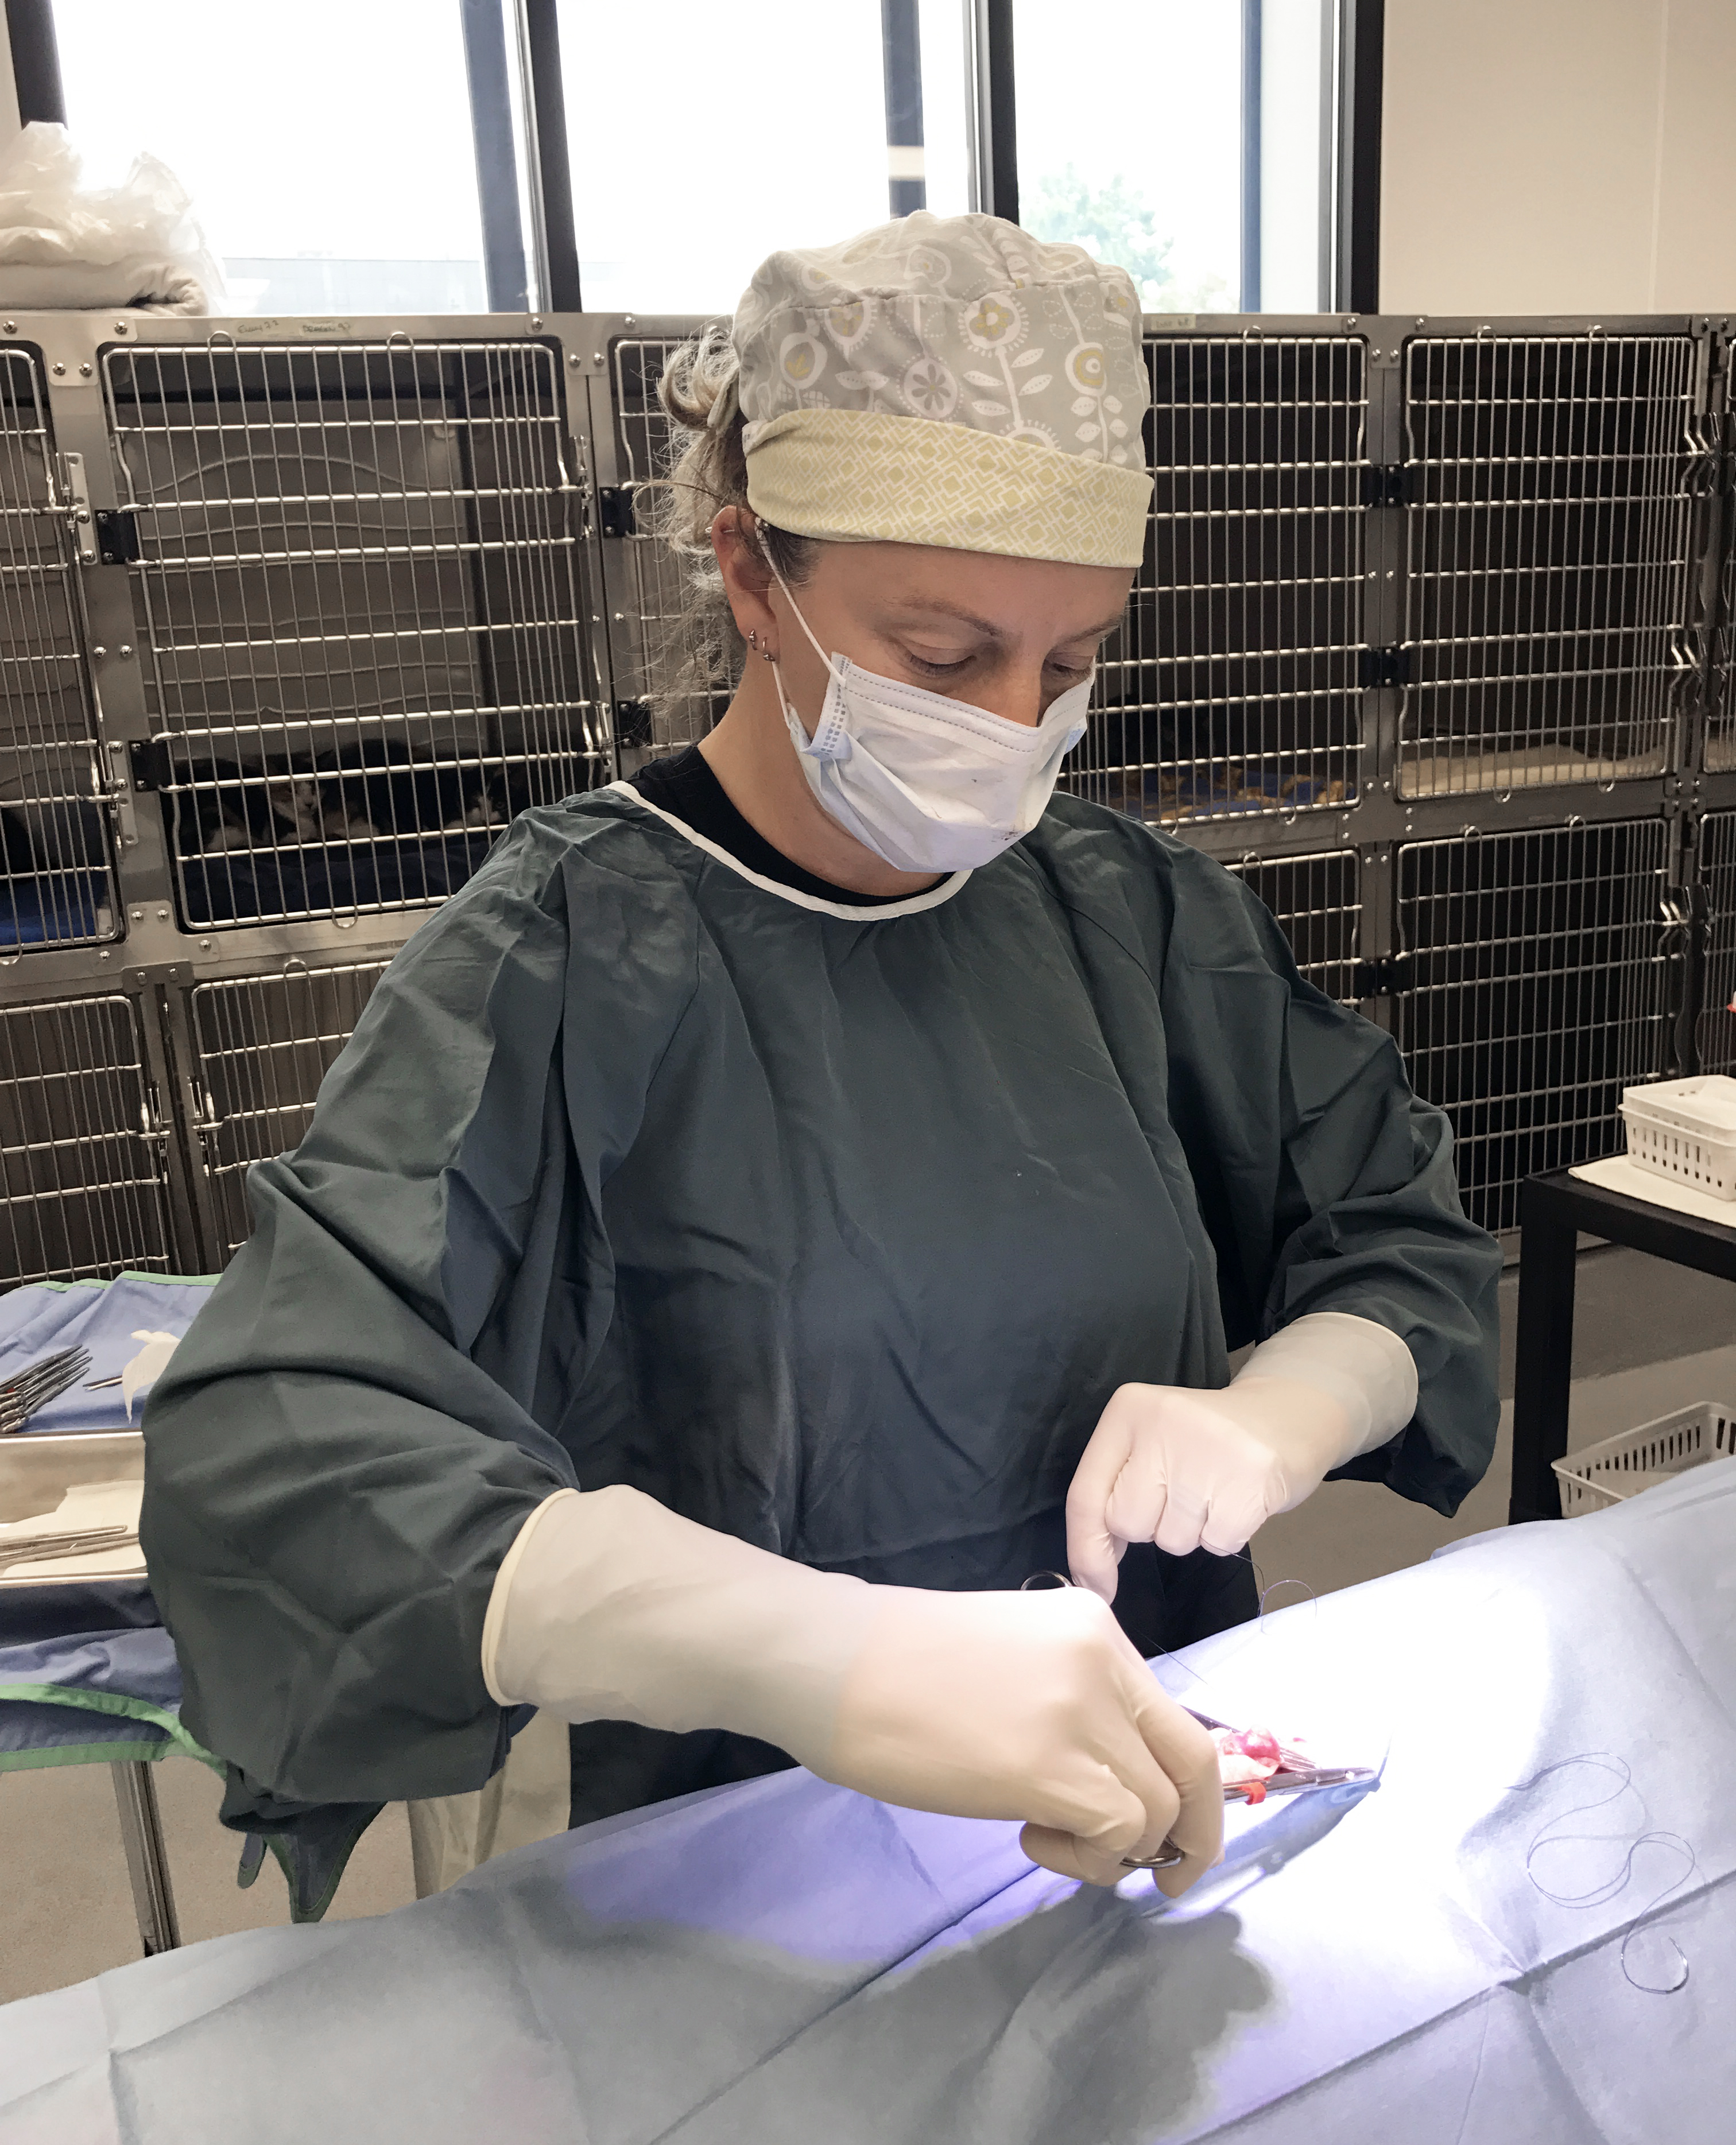 Register for Surgery - Low-Cost Spay/Neuter in MN